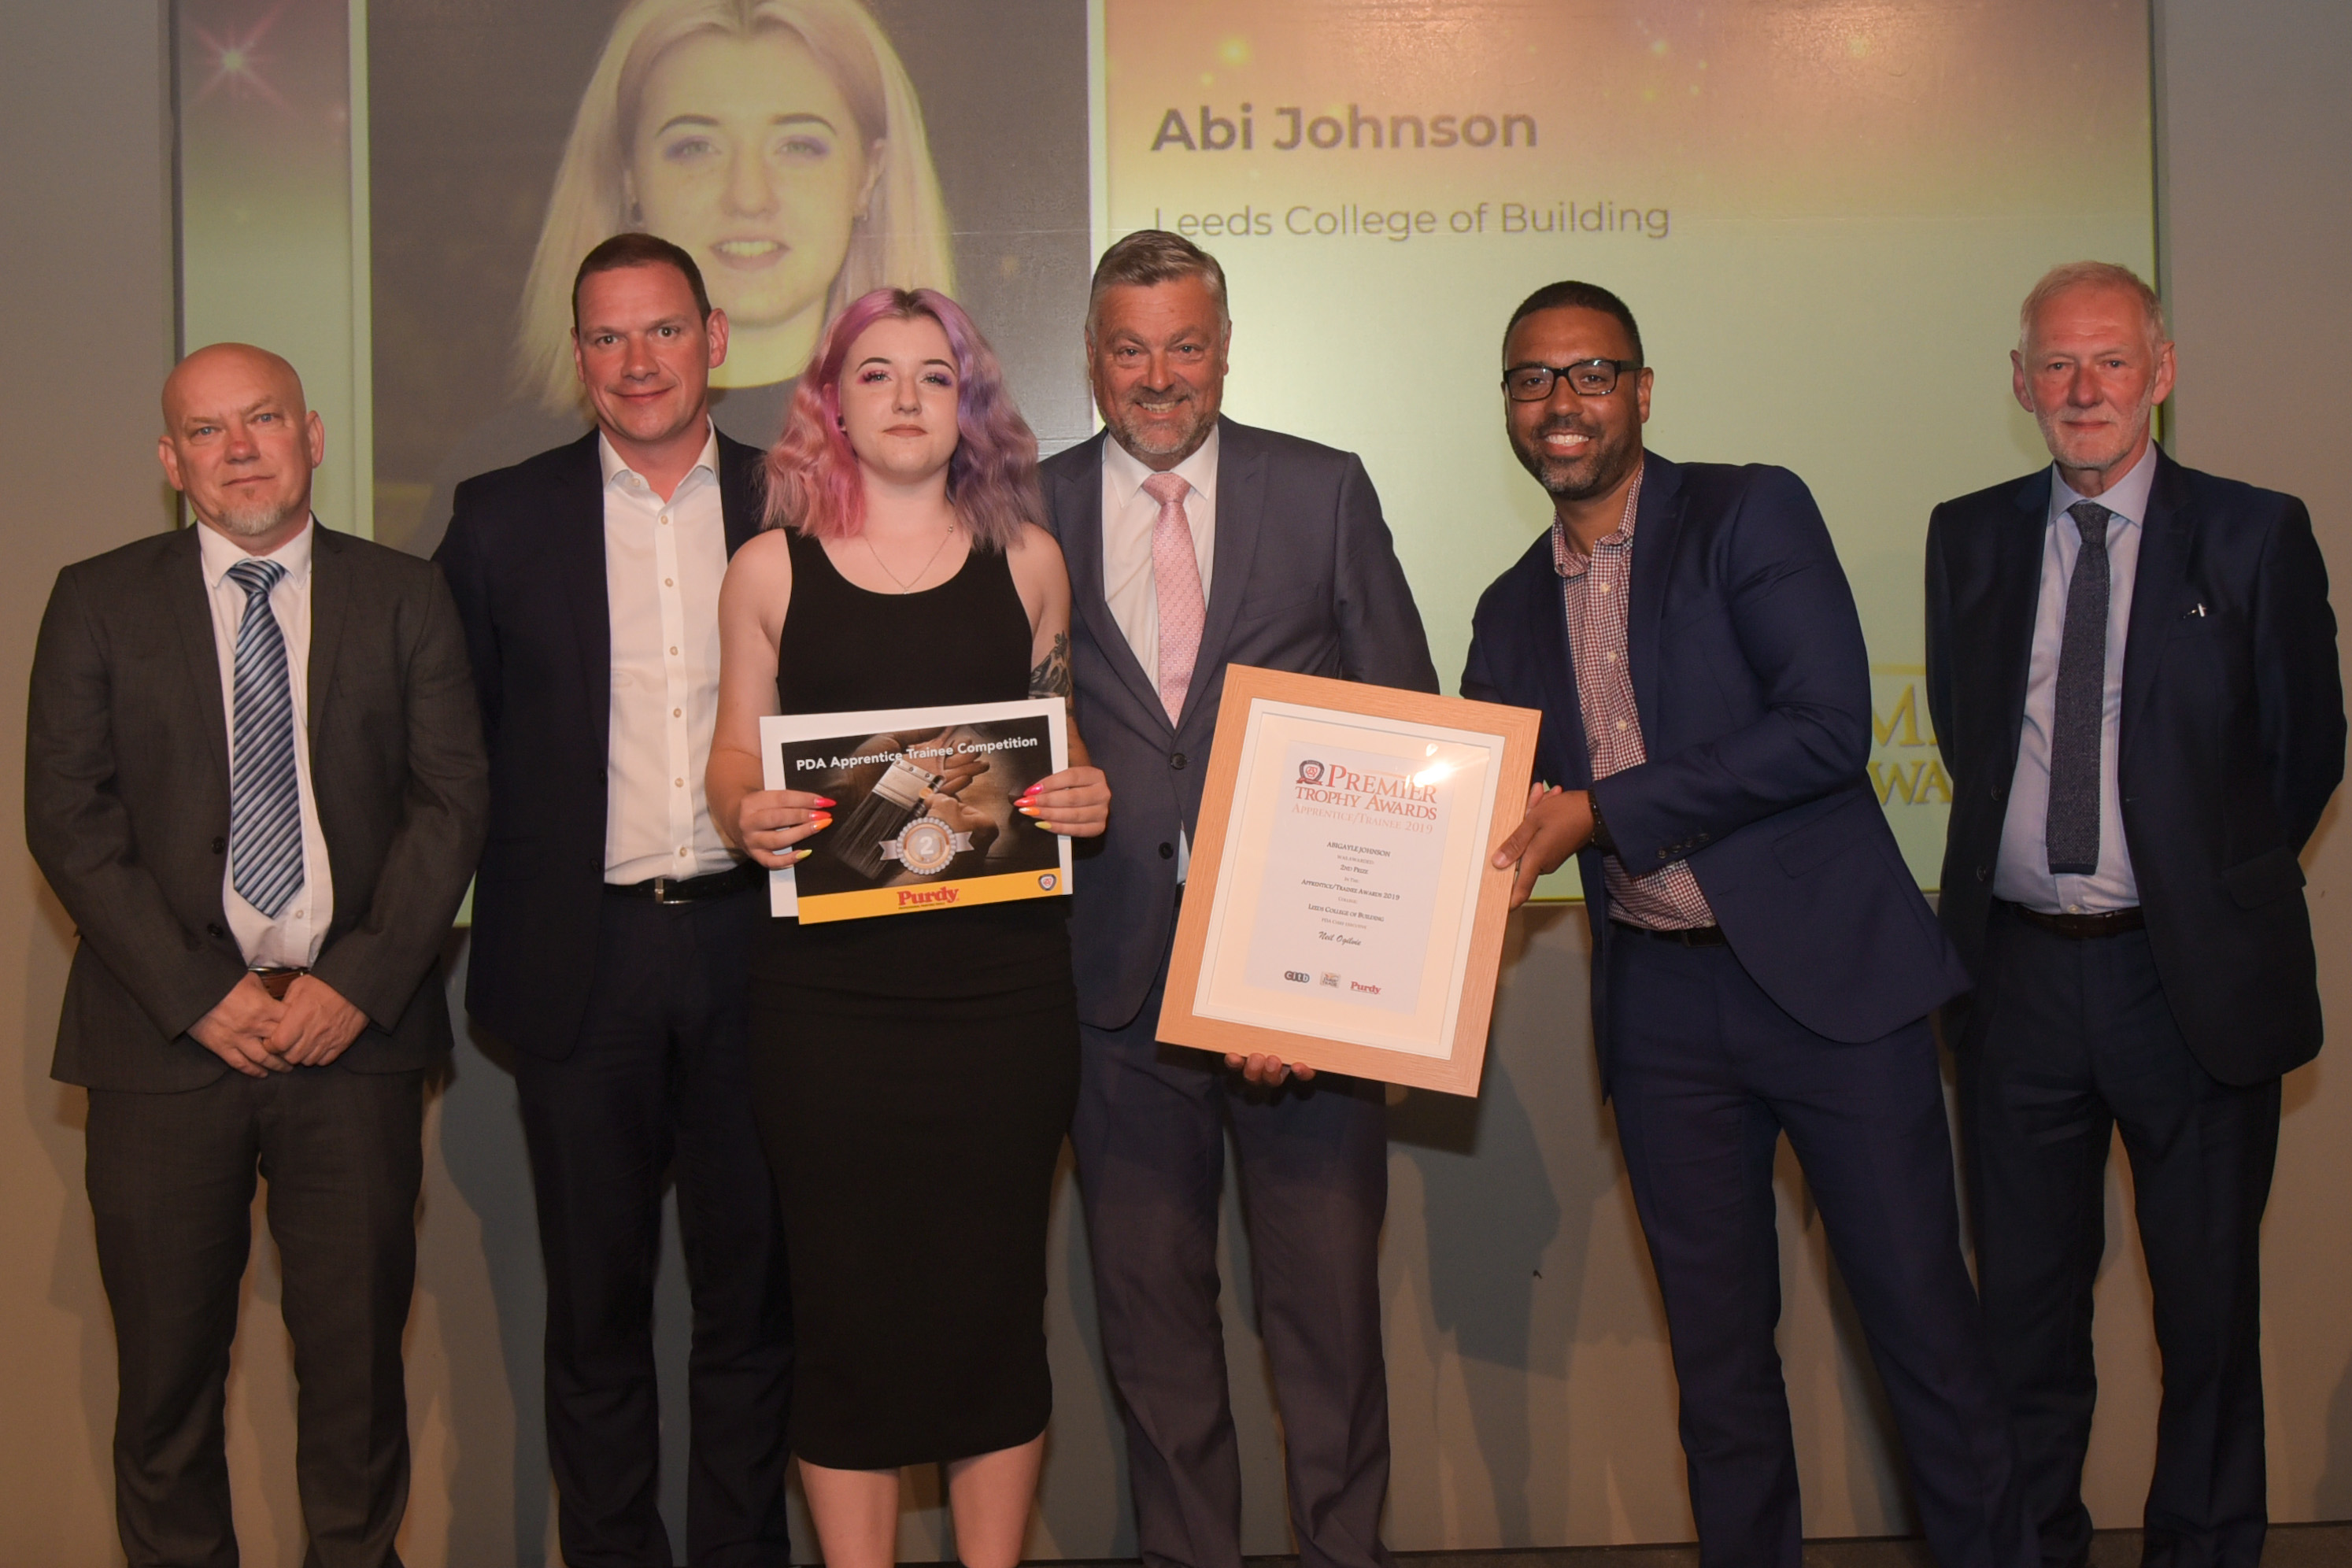 Apprentice Abi Johnson Winner (L to R): Mark Howroyd (Leeds College of Building), Alistair McAuley (Akzonobel [Dulux Trade]), Abi Johnson, Rob Davis (Purdy), Nathan Wilkins (CITB), Andrew Davis (Association of Painting Craft Teachers)